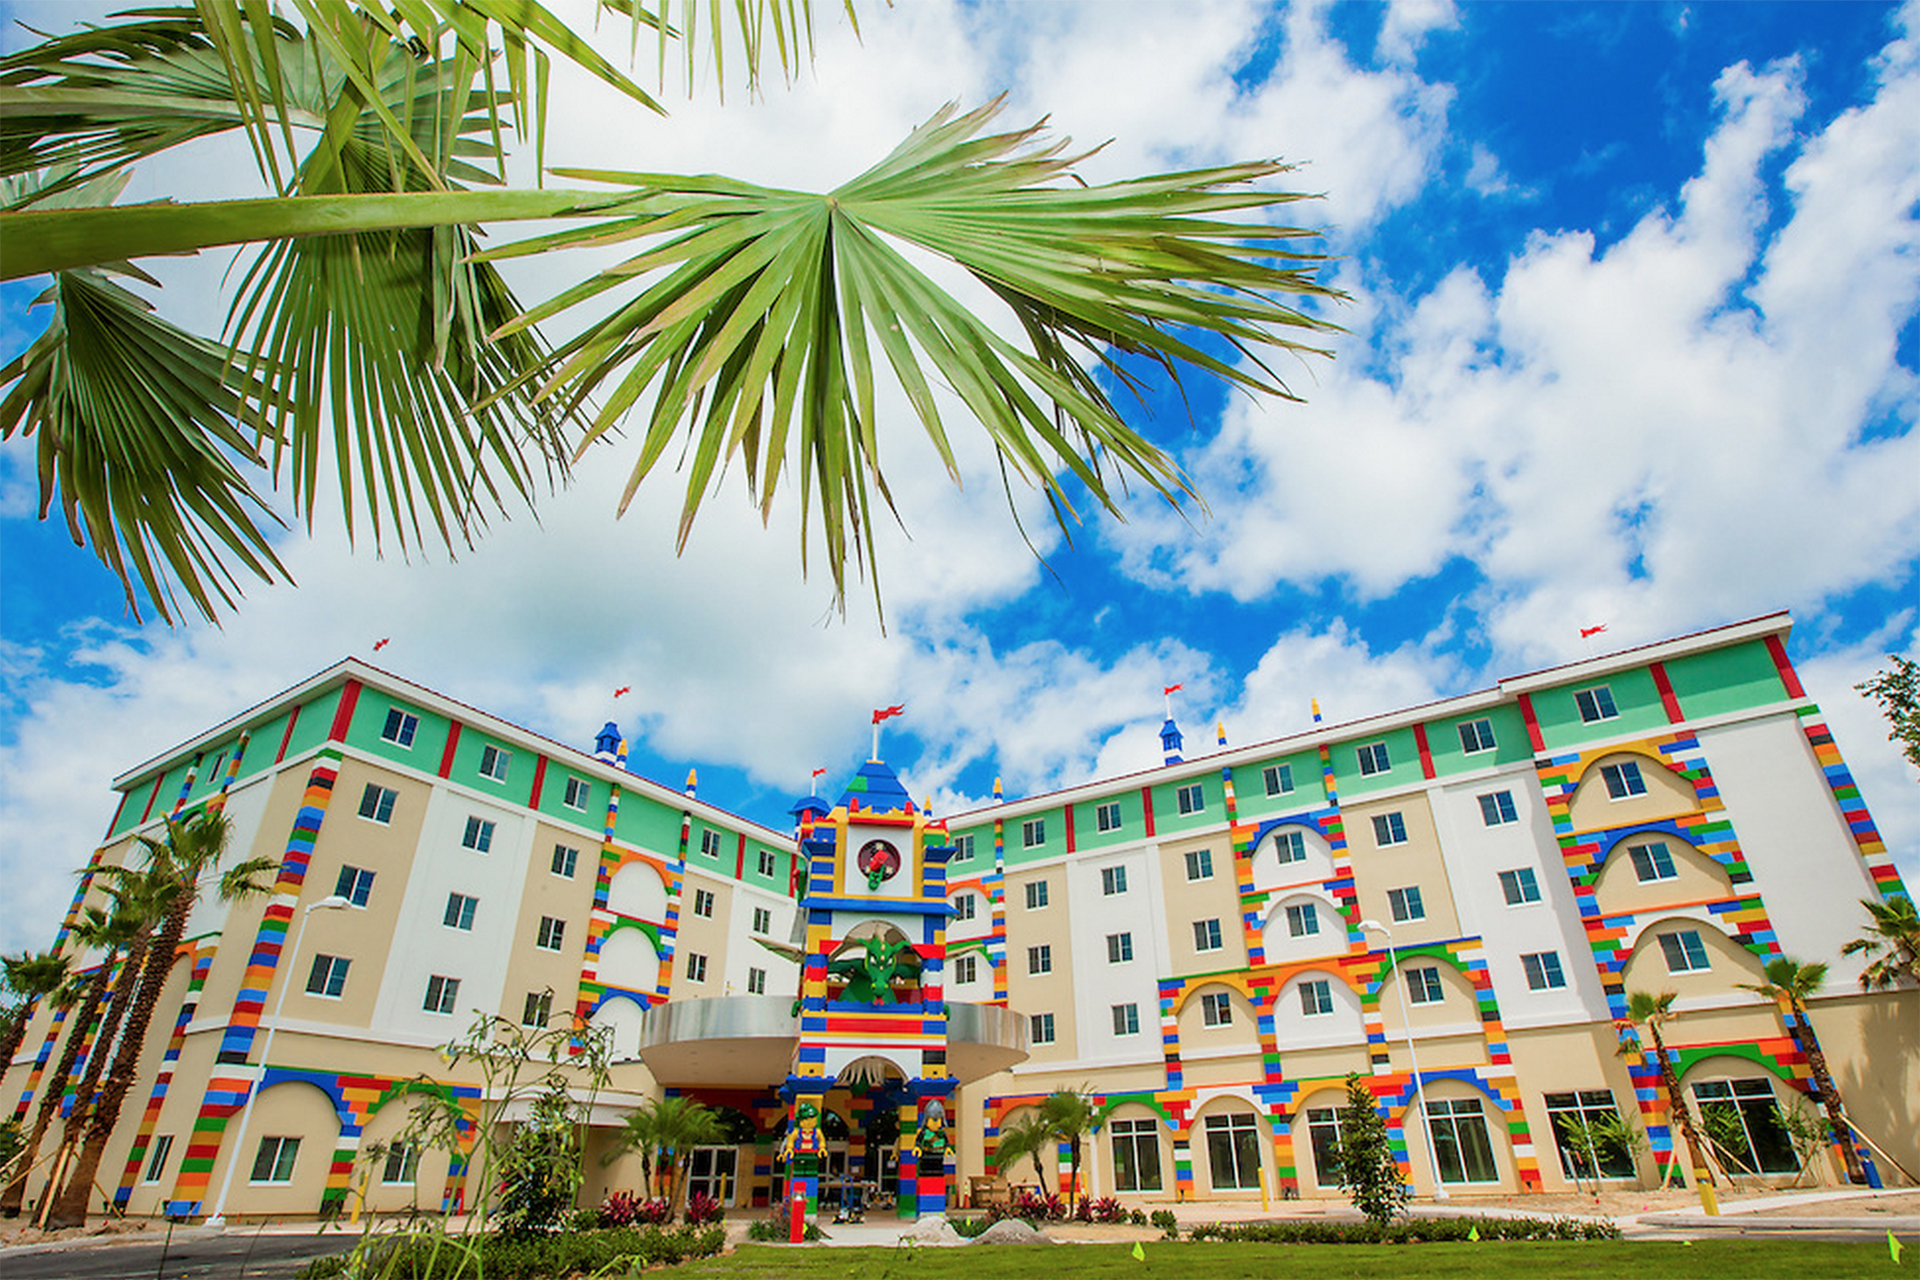 10 Best Amusement Parks With Hotels | Family Vacation Critic